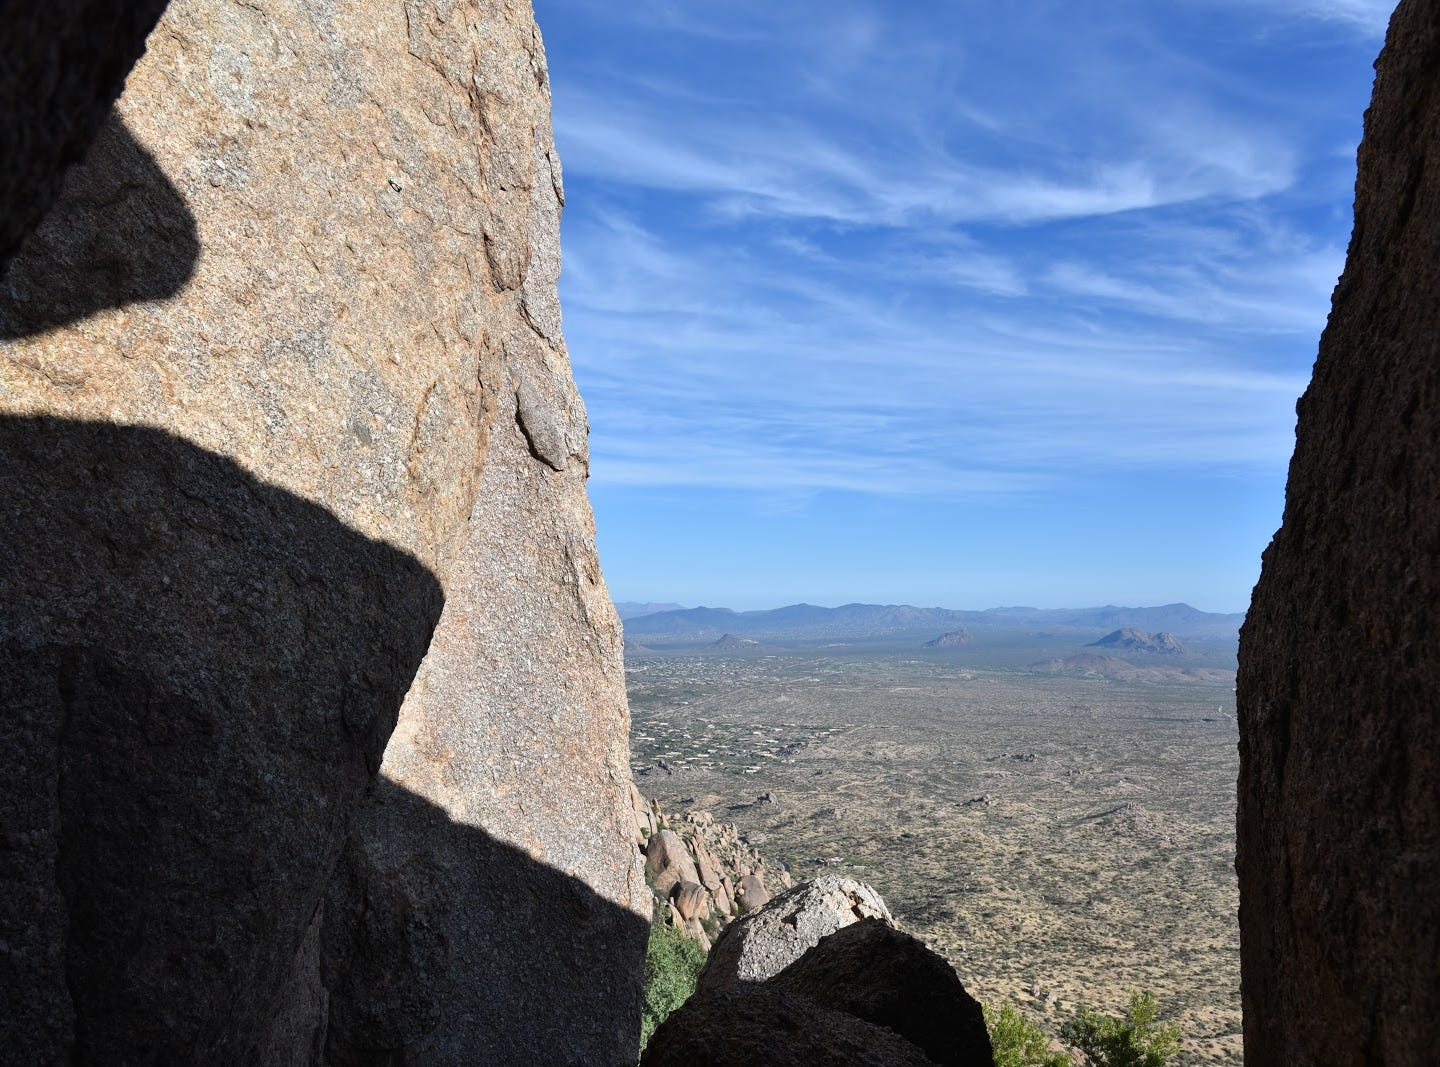 View from the base of Tom's Thumb.